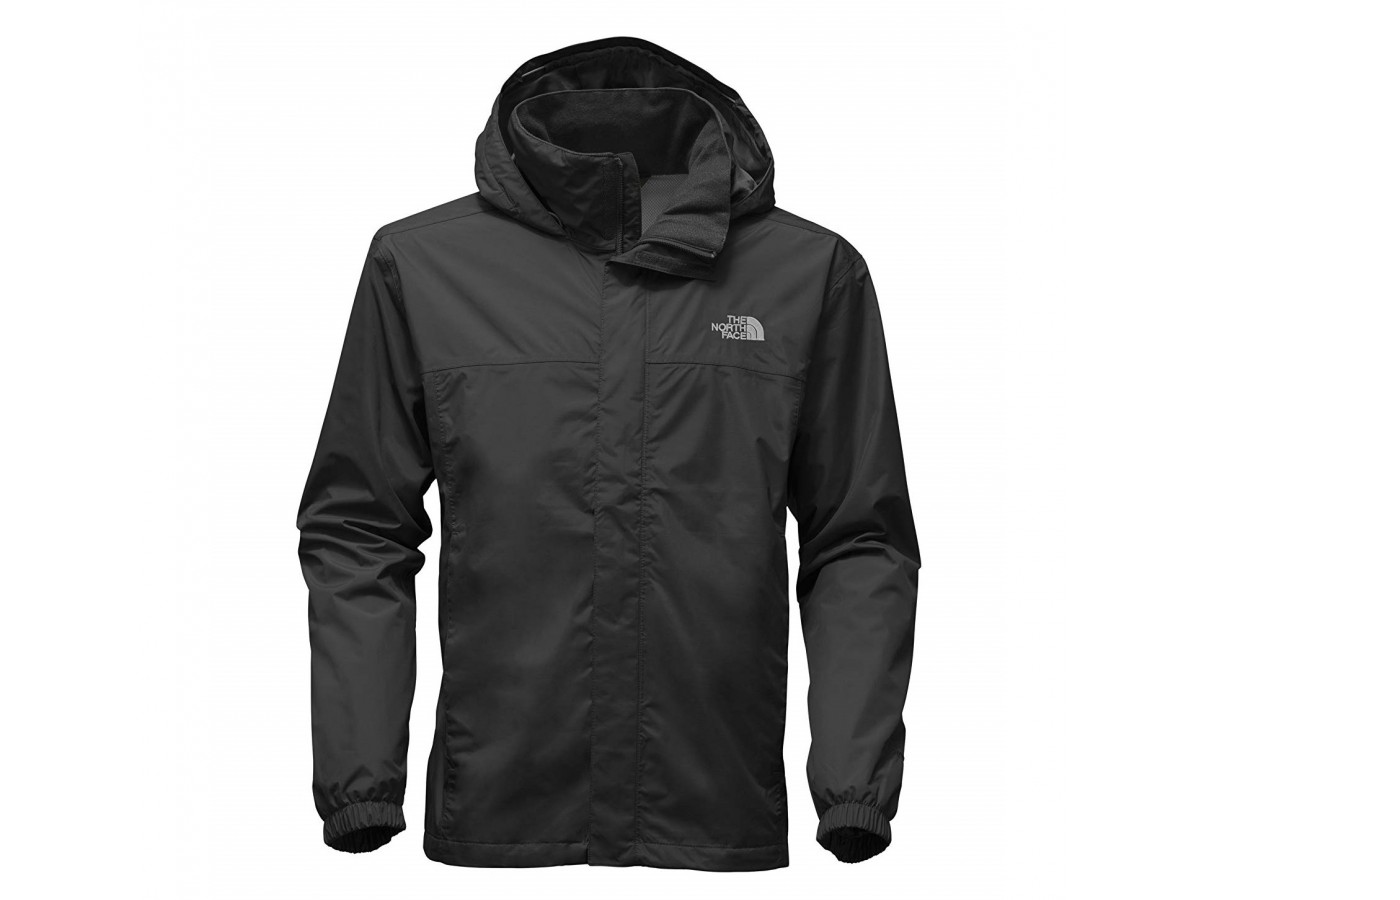 The North Face Resolve 2 offers breathable rain proofing for breathable protection when in rainy environments.